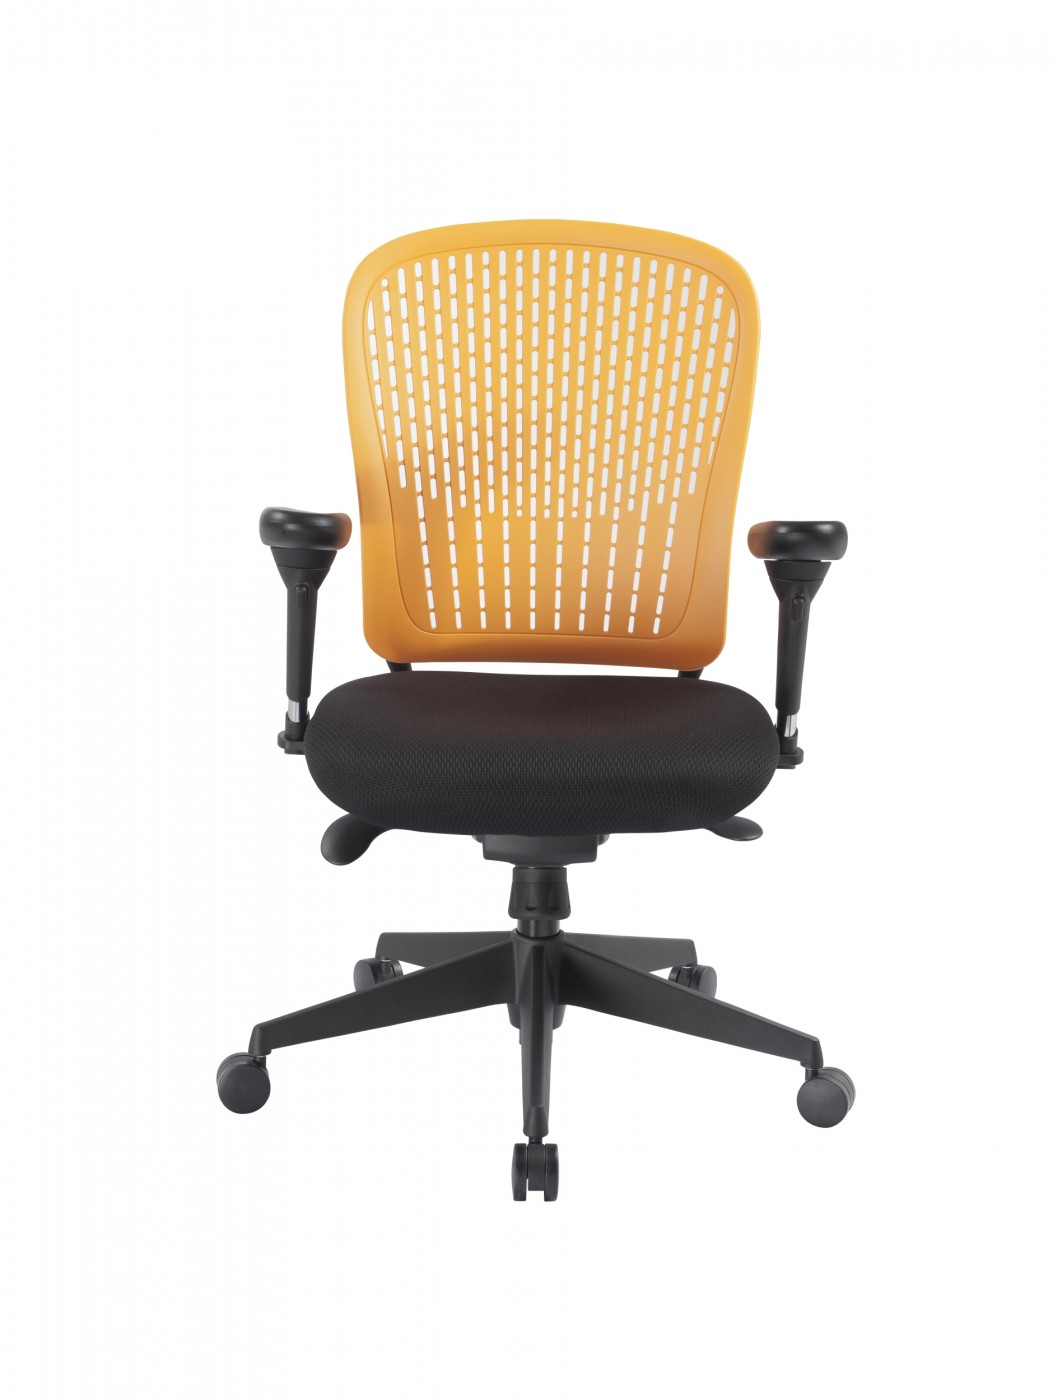 Office Chairs E Last Bcm U110 121 Office Furniture